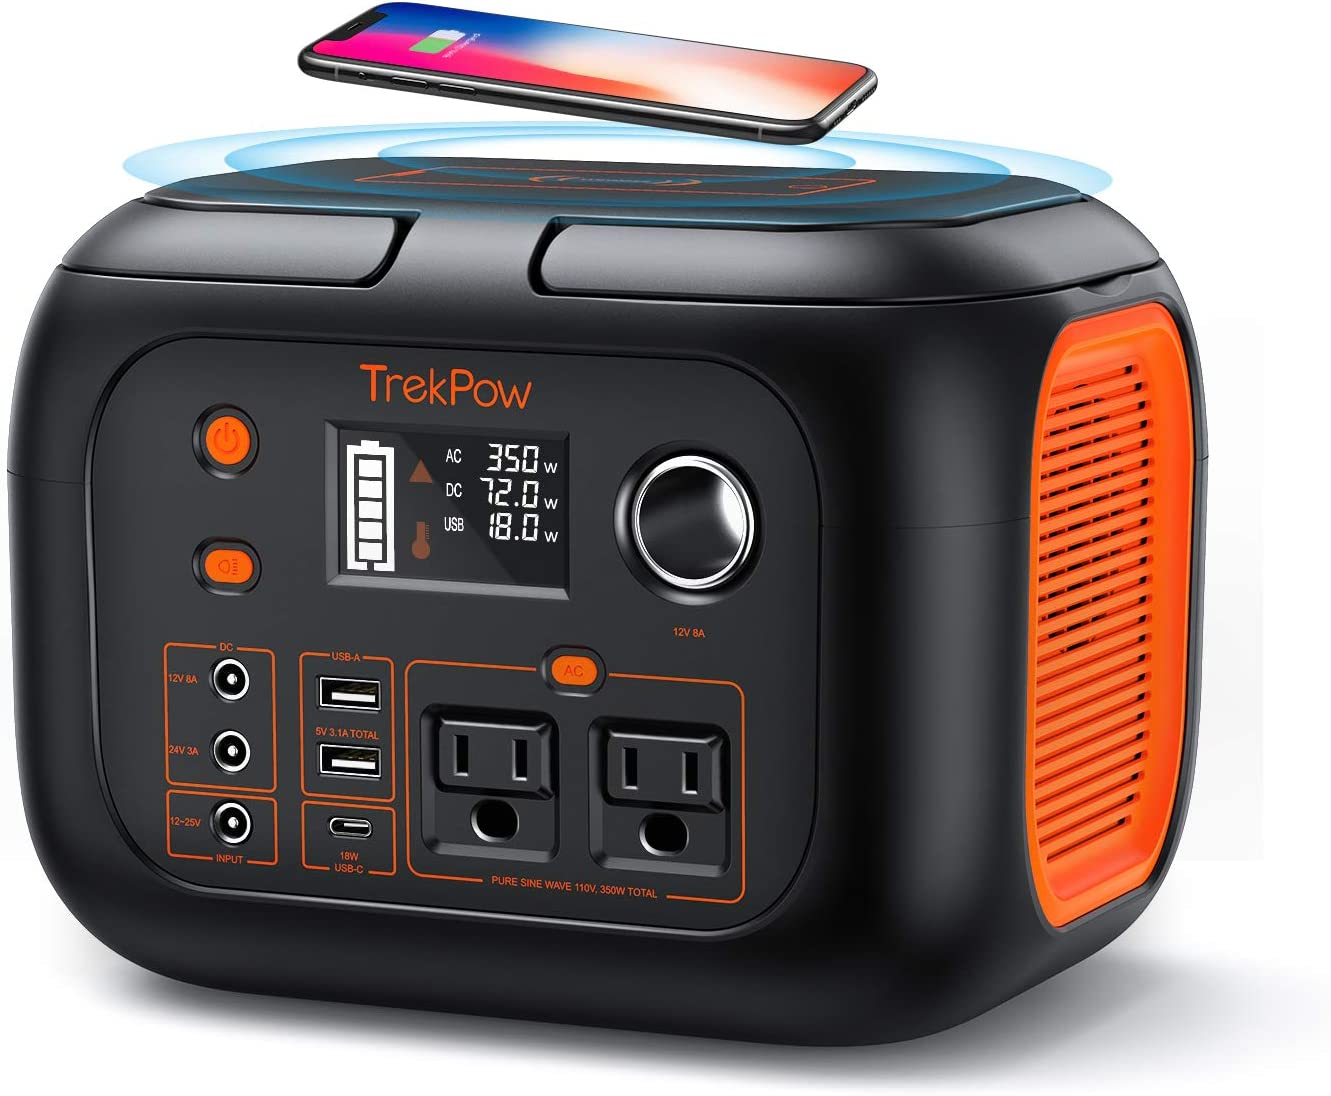 350W Portable Power Station, TrekPow 296Wh 80000mAh Solar Generator, Lithium Battery Emergency Power Station with 2 AC Outlet 2 DC 3 USB Ports, Power Supply with Flashlight for Outdoor Adventure